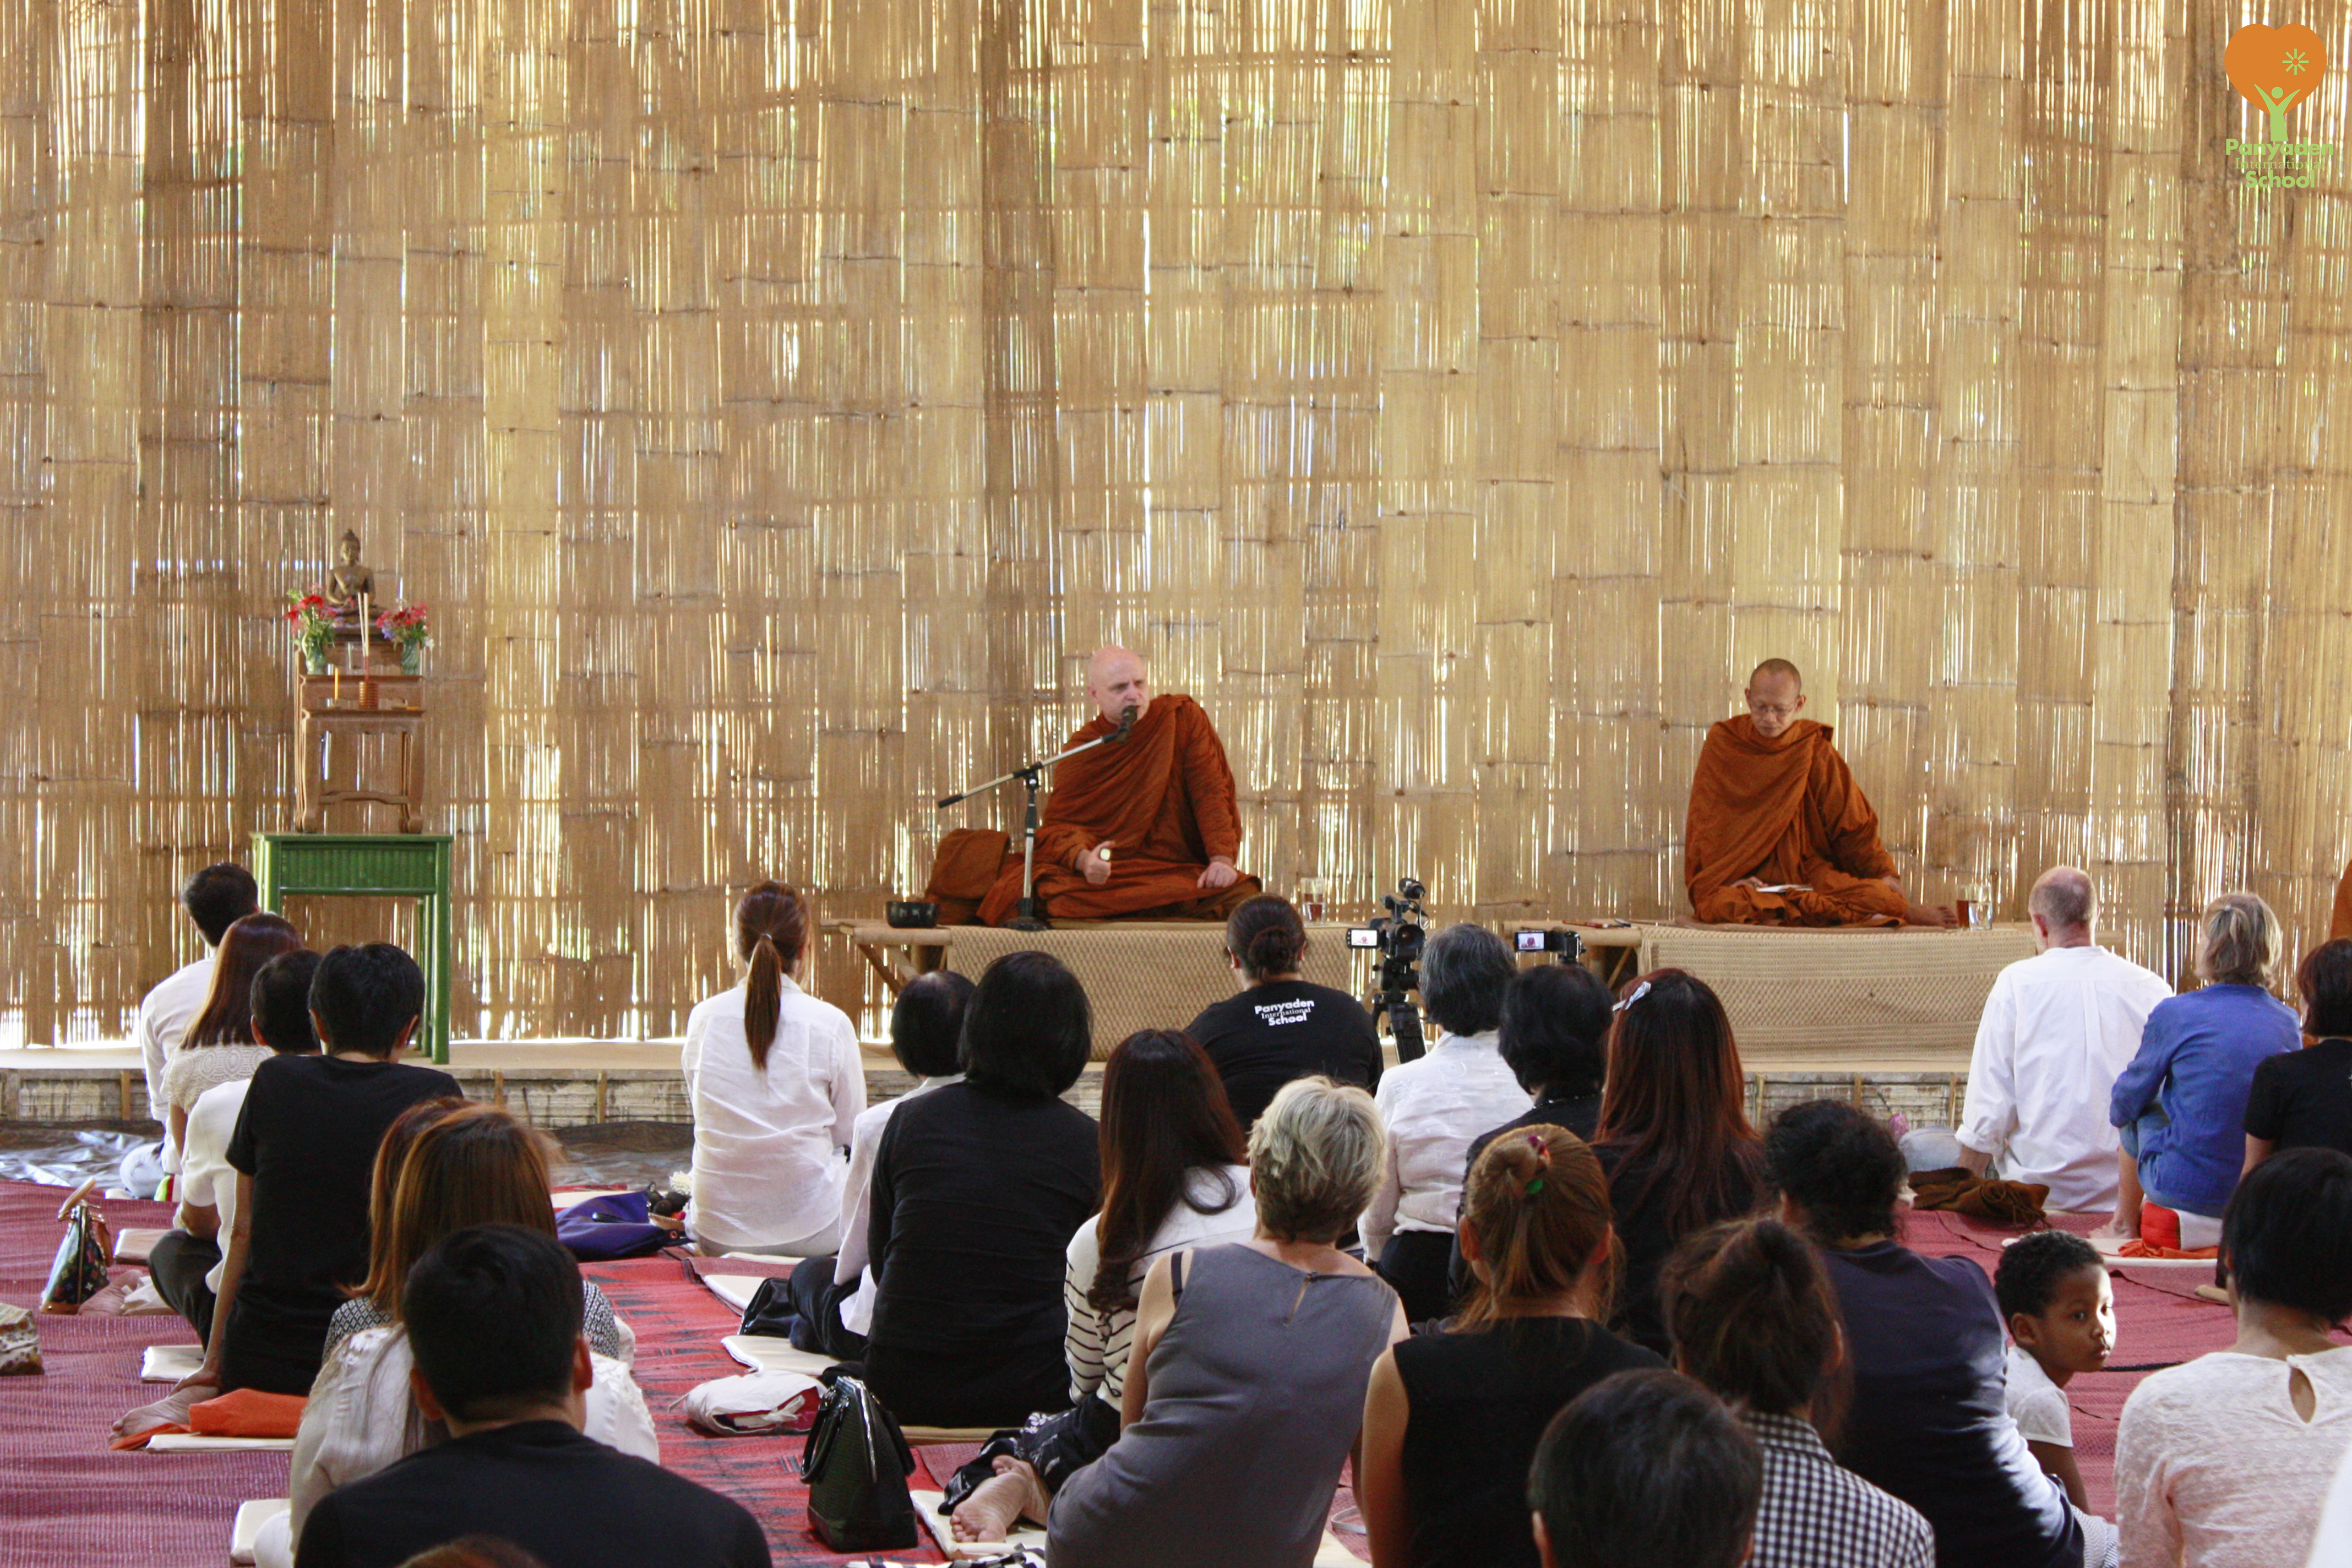 Dhamma Talk by Ven. AJahn Jayasaro at Panyaden International Schoolo